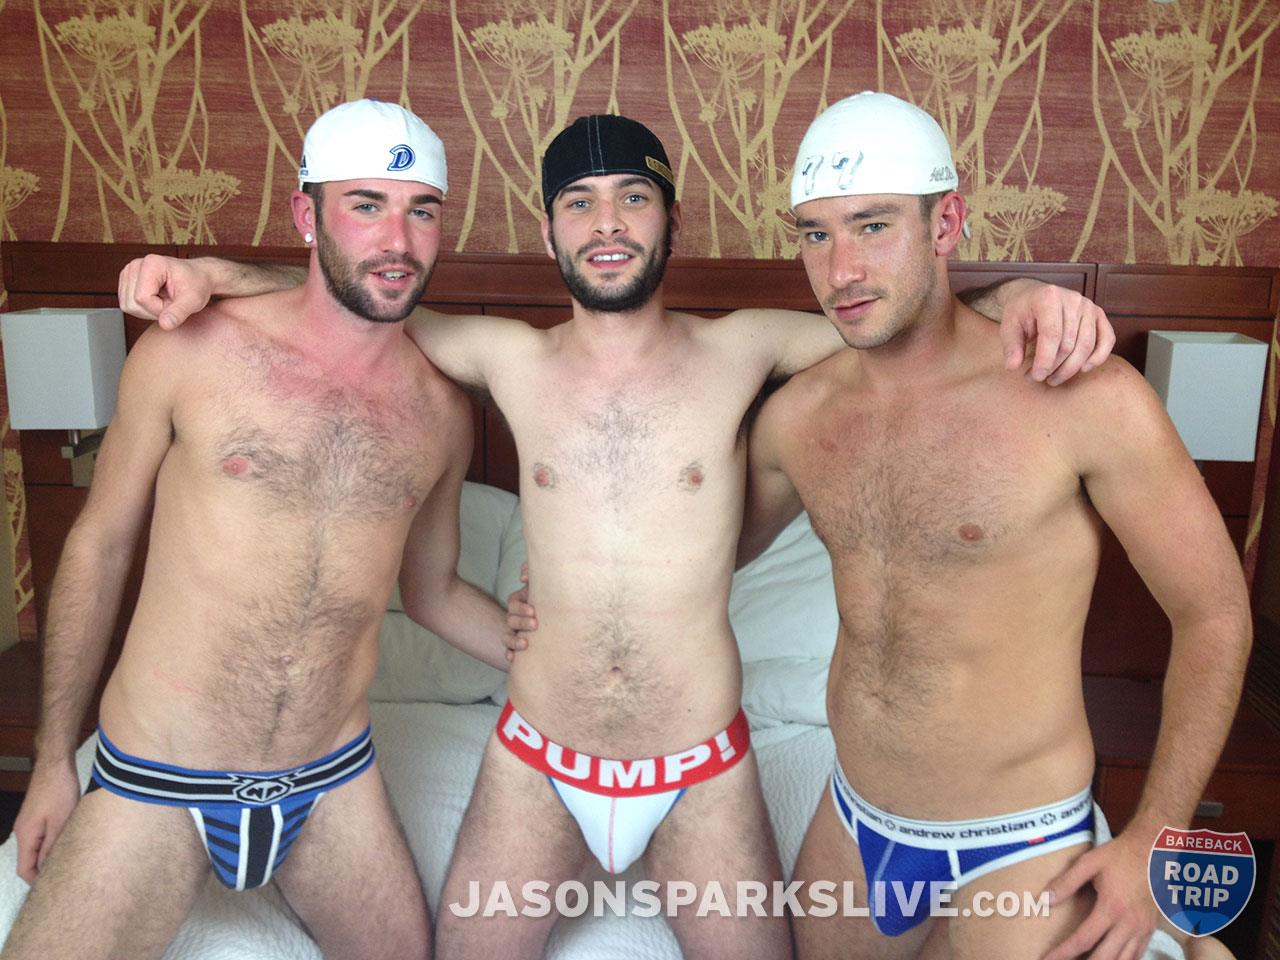 Jason-Sparks-Live-Lucas-Zander-and-Alex-Mason-and-Owen-Powers-Hairy-Twink-Bareback-Threeway-Amateur-Gay-Porn-02 Getting Double Penetrated Bareback In An Iowa Hotel Room